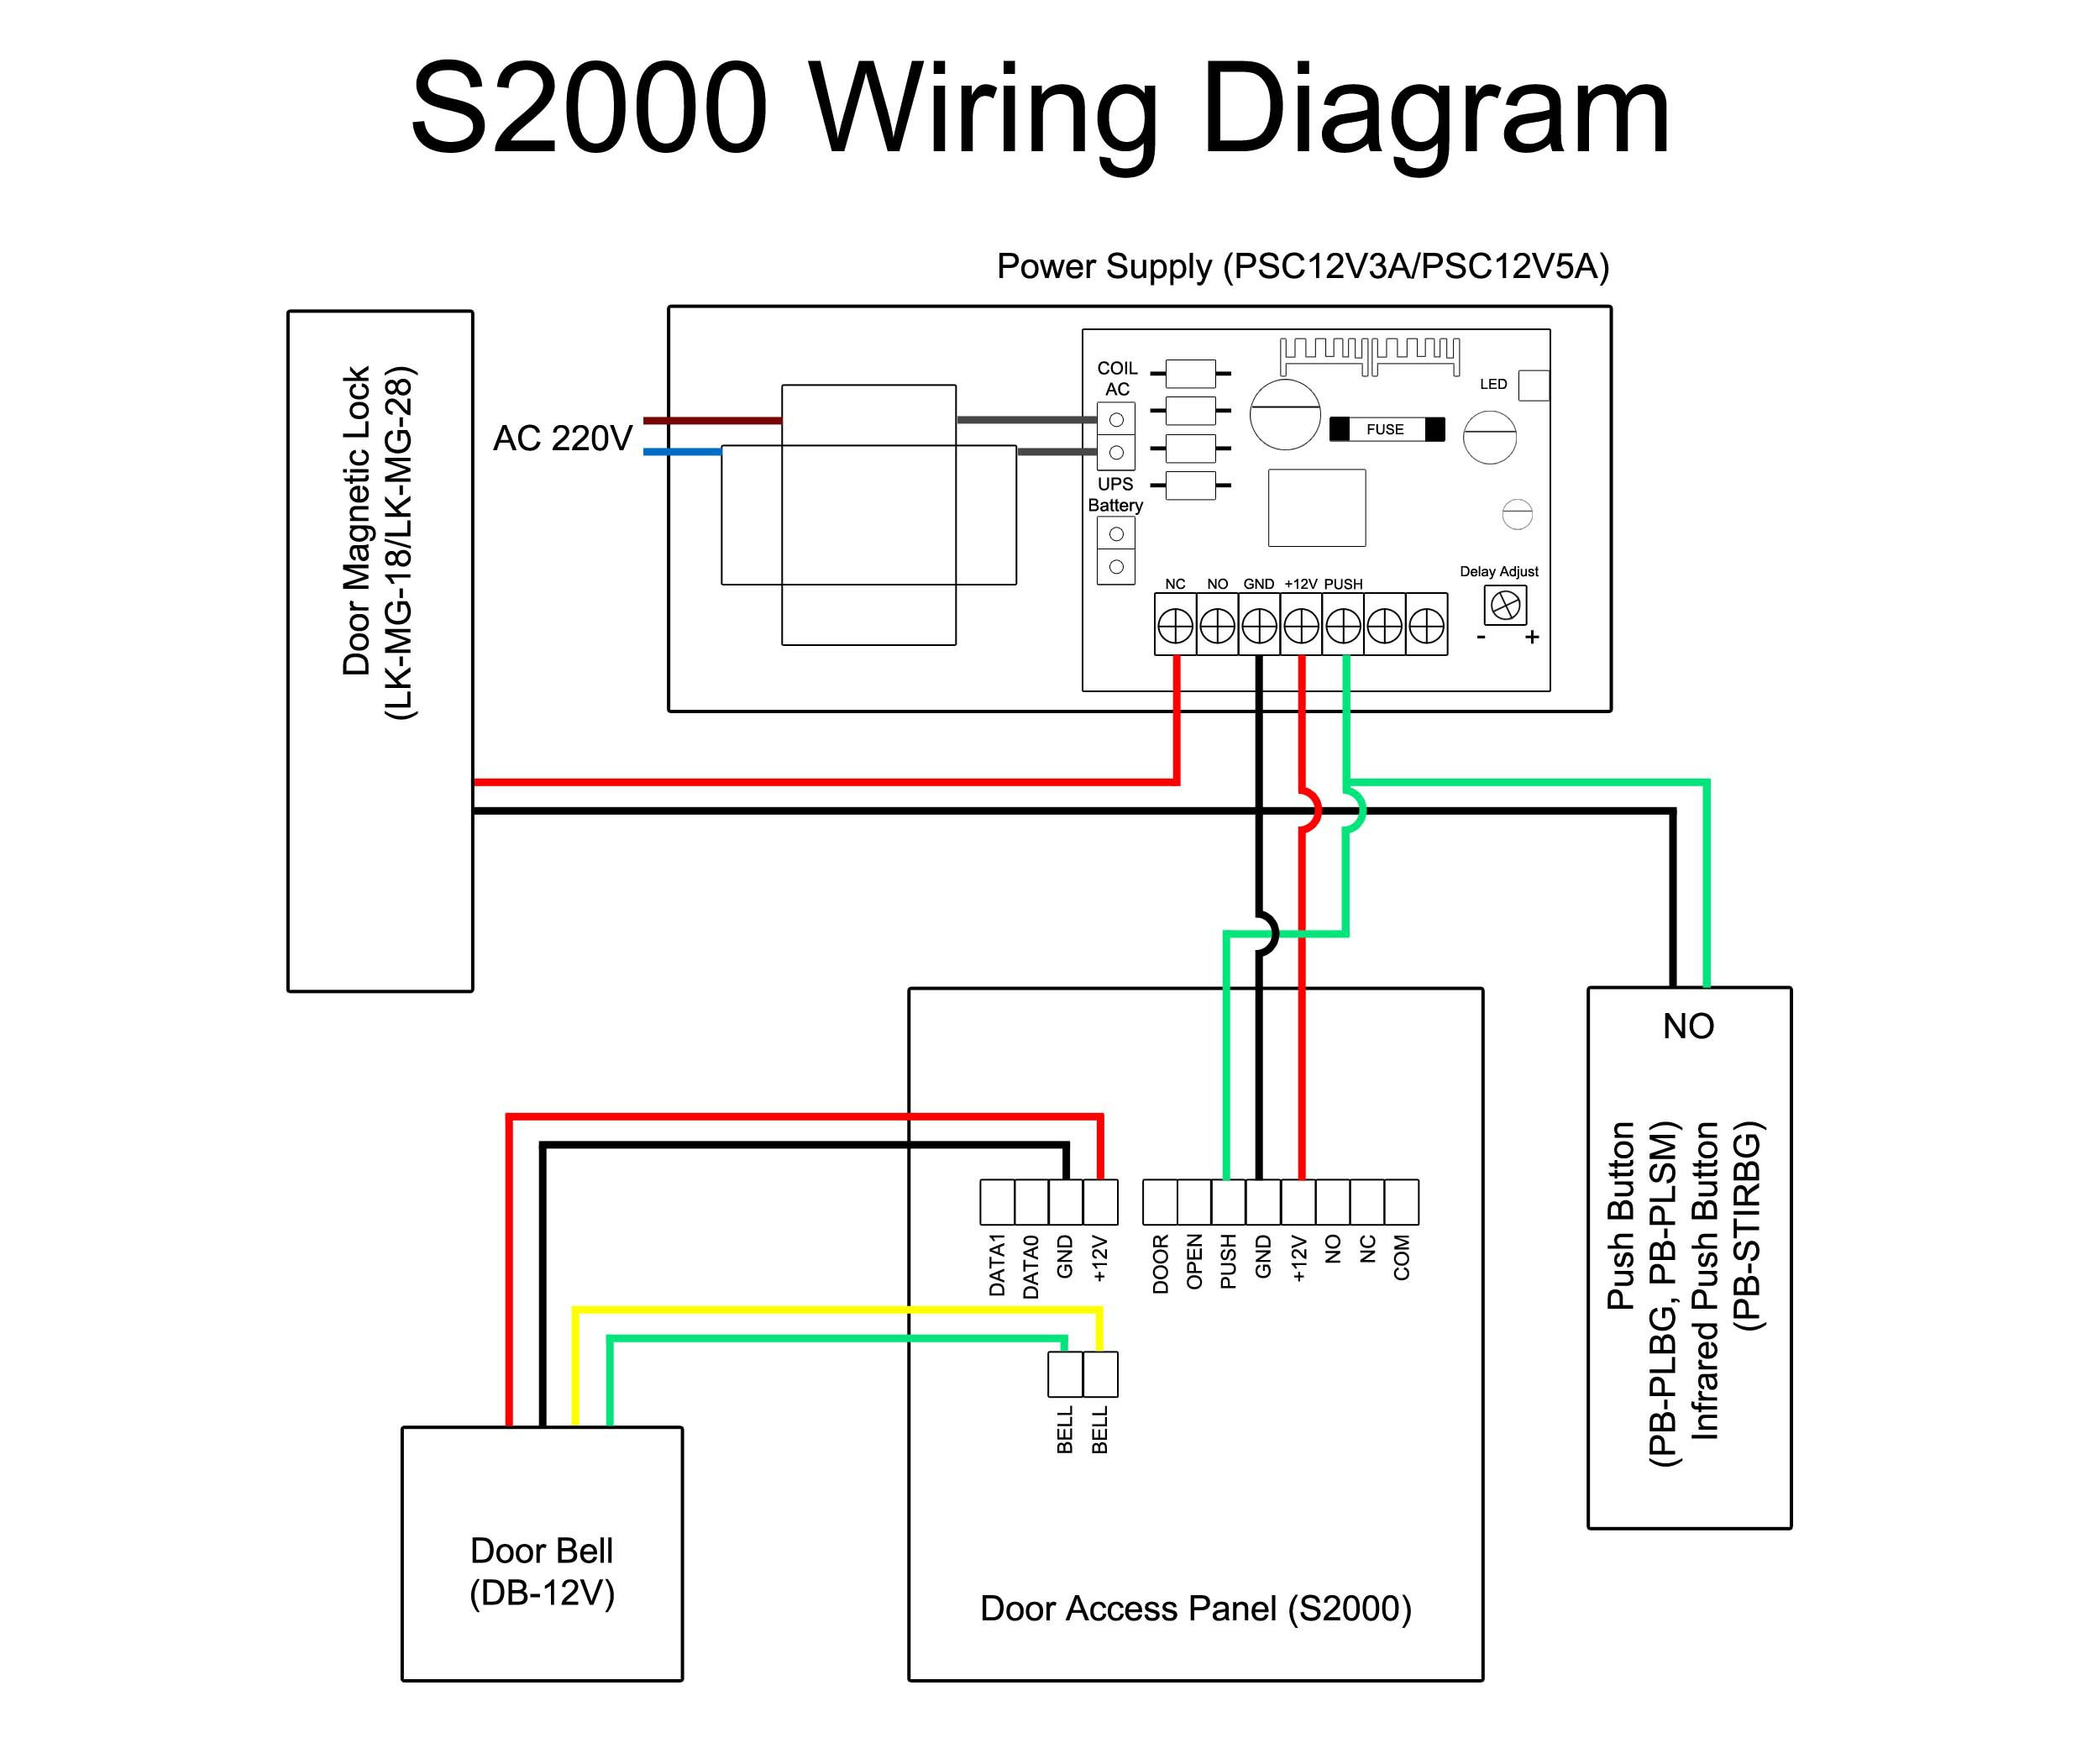 ptz controller wiring diagram Download-ivigil technical support faq ptz wiring diagram ivigil cctv wire rh 45 76 62 56 4-o